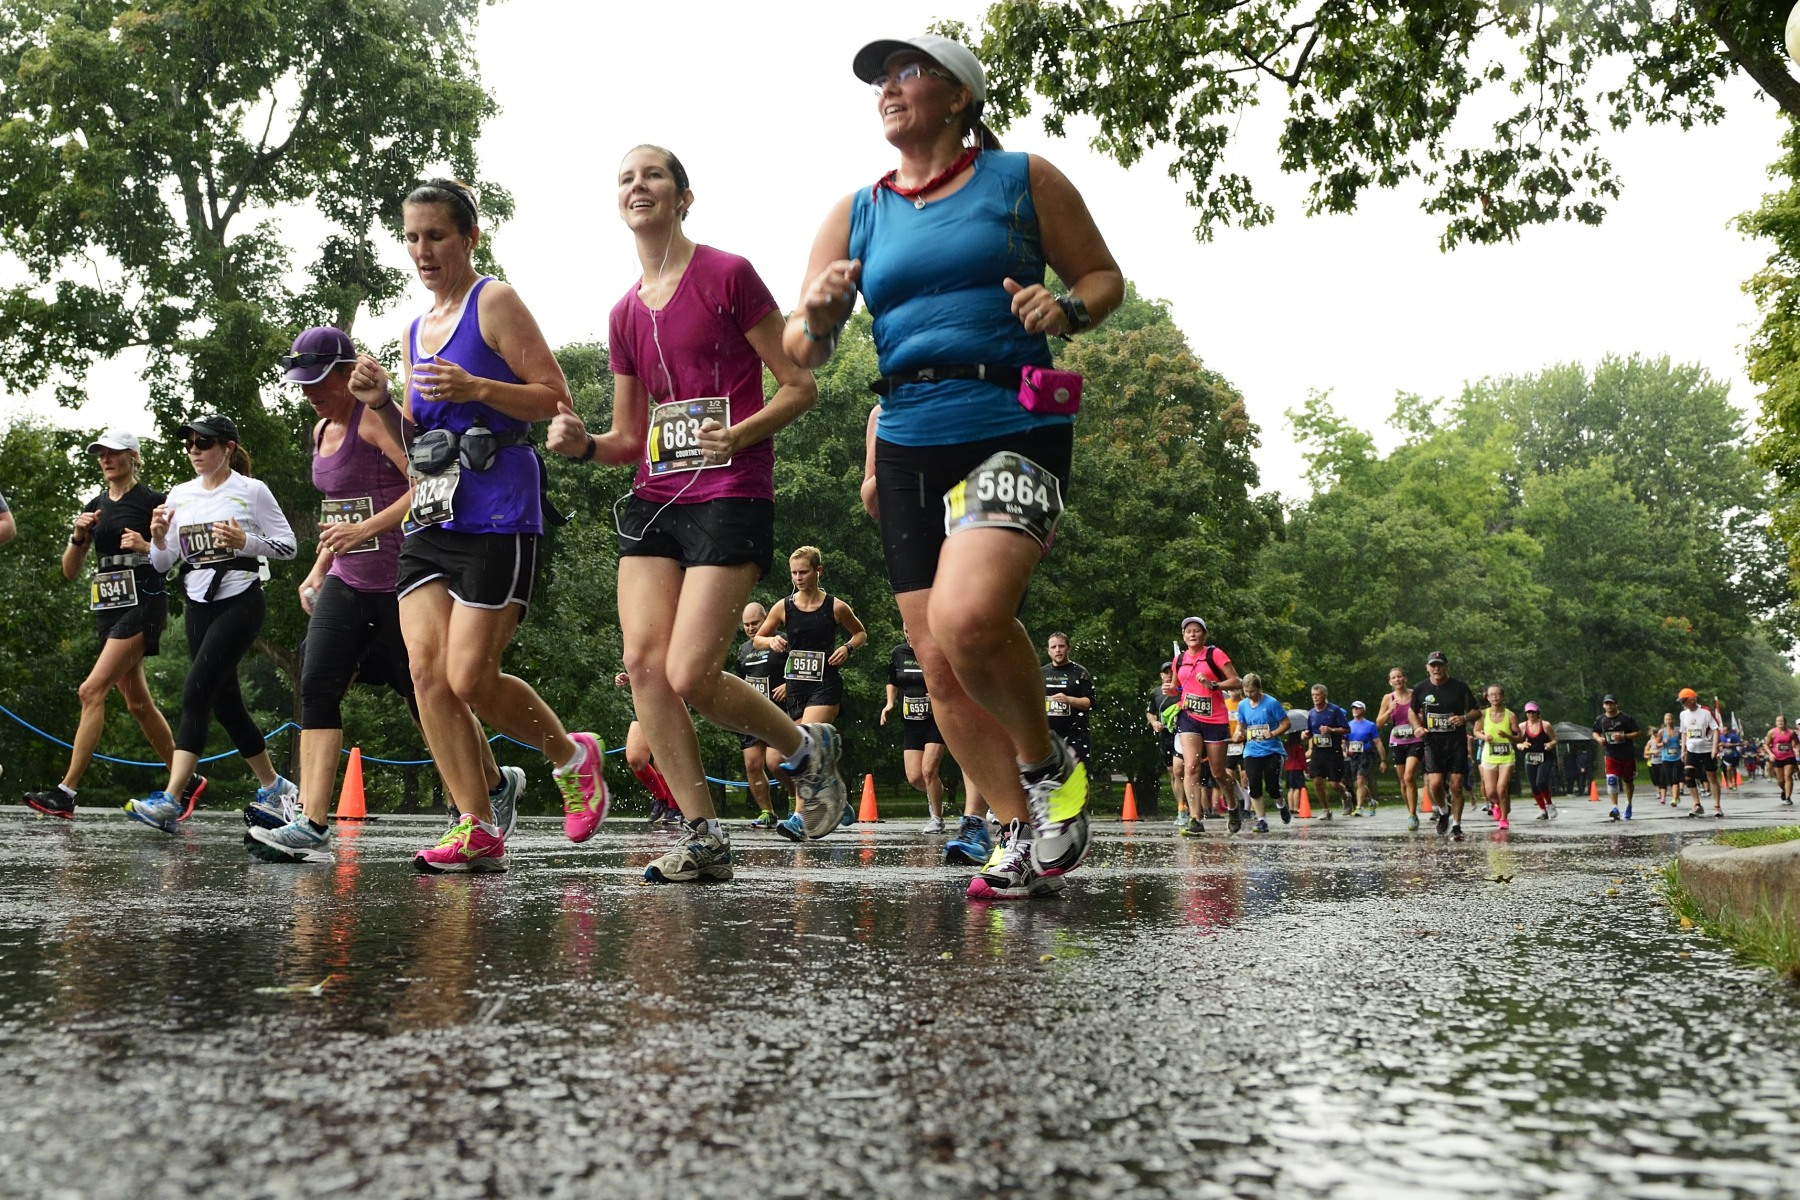 Despite the pouring rain, participants kept running, rolling and walking with great intensity and determination.